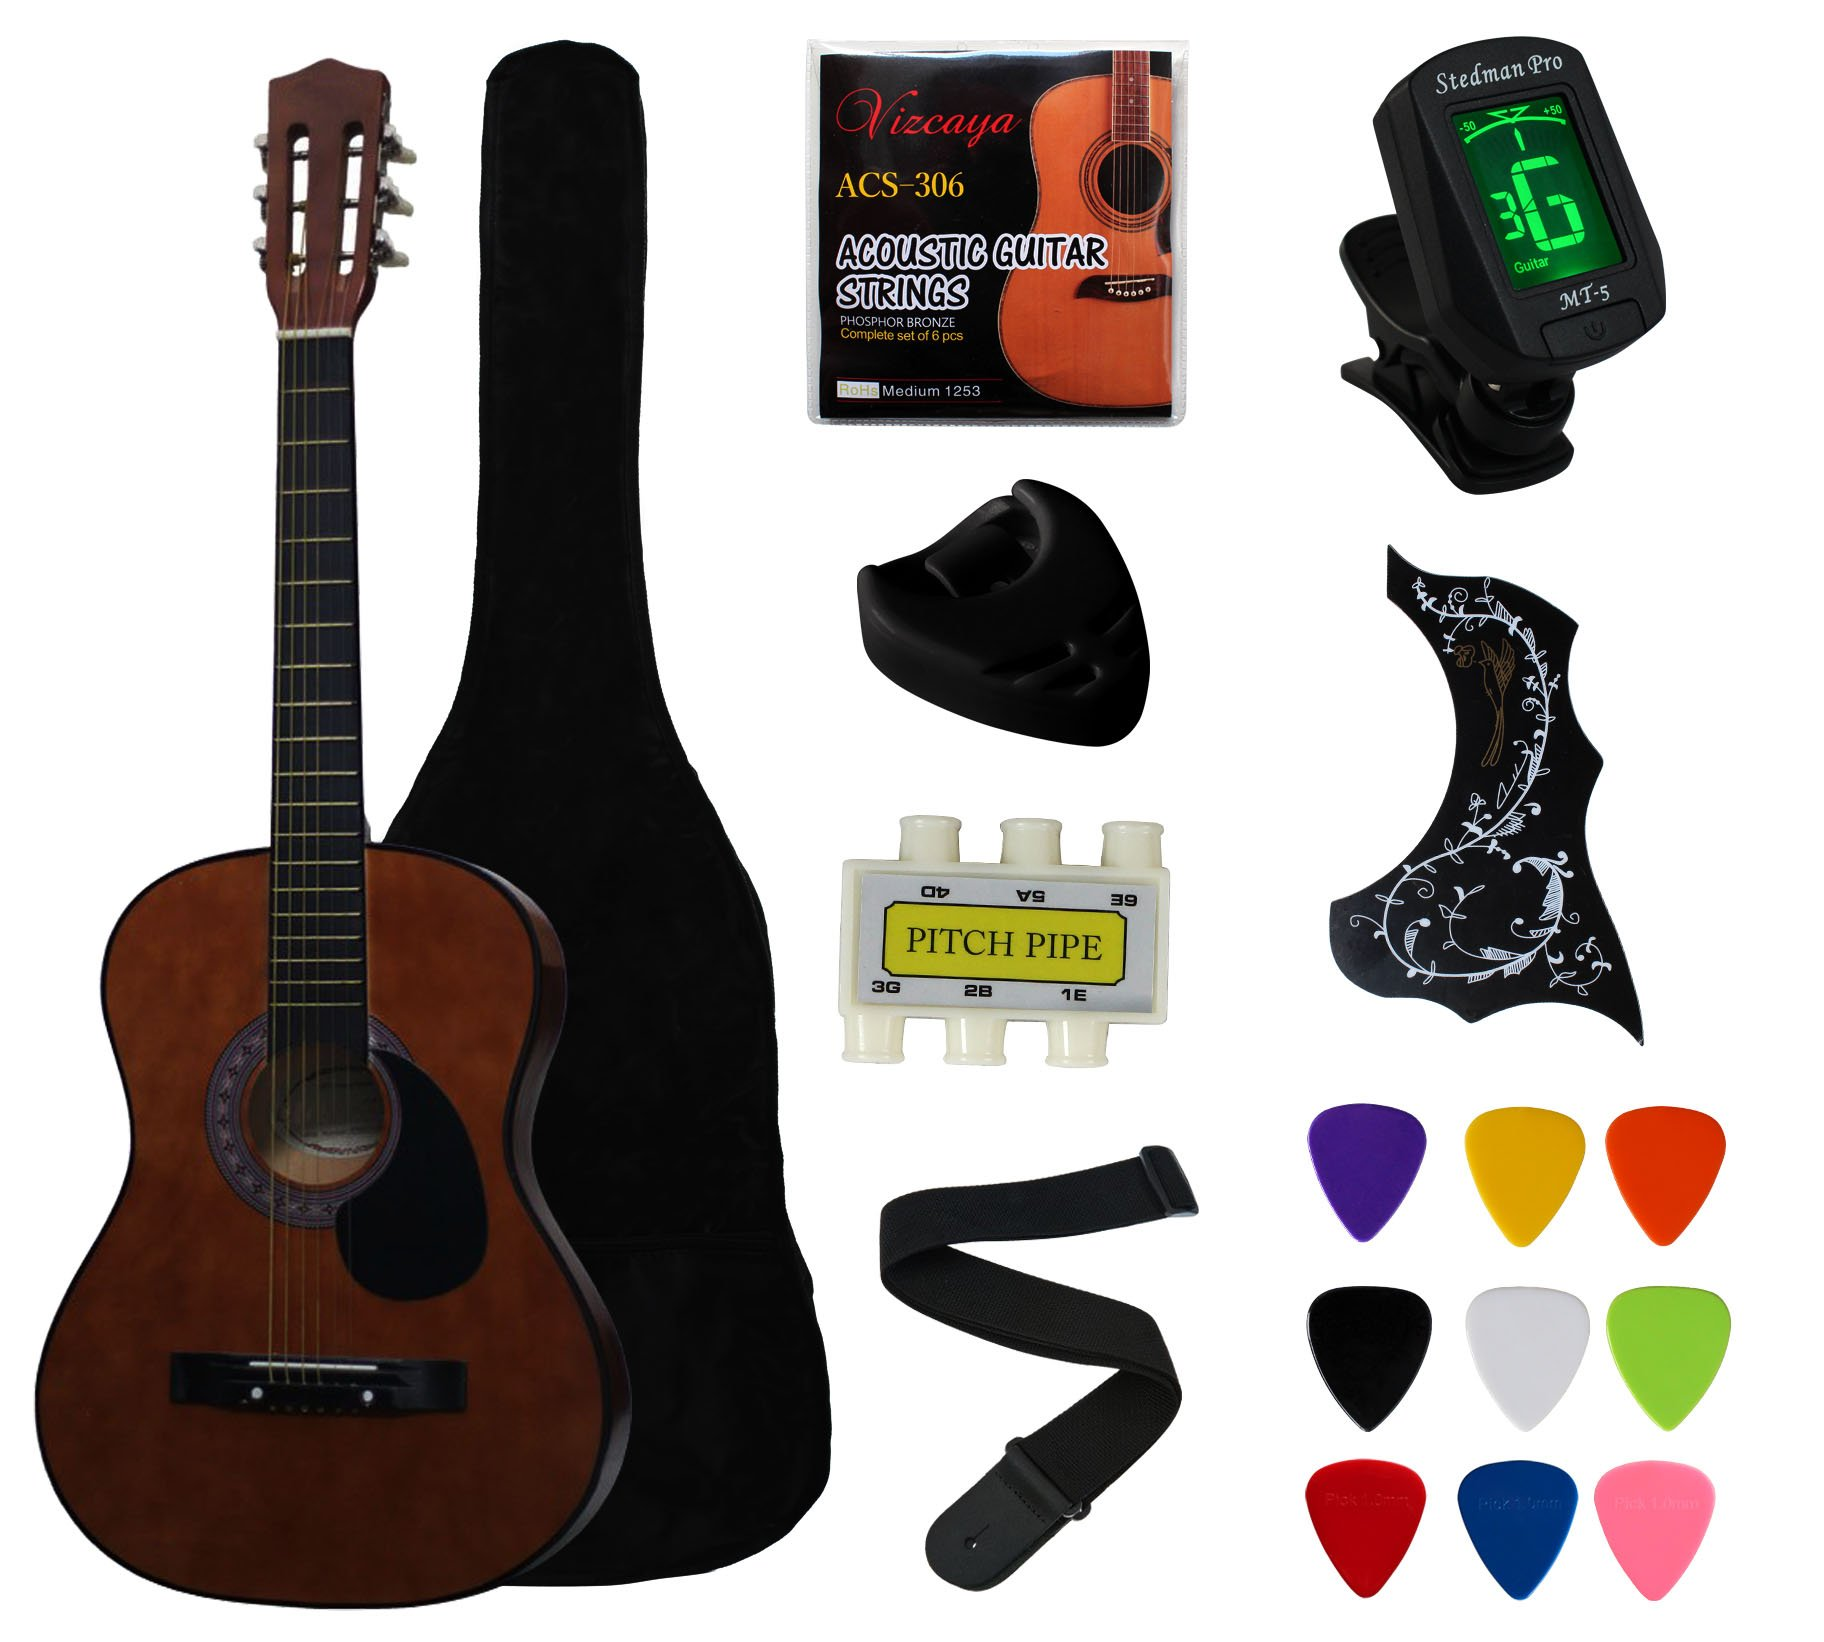 YMC 38'' Coffee Beginner Acoustic Guitar Starter Package Student Guitar With Gig Bag,Strap, 3 Thickness 9 Picks,2 Pickguards,Pick Holder, Extra Strings, Electronic Tuner -Coffee by YMC